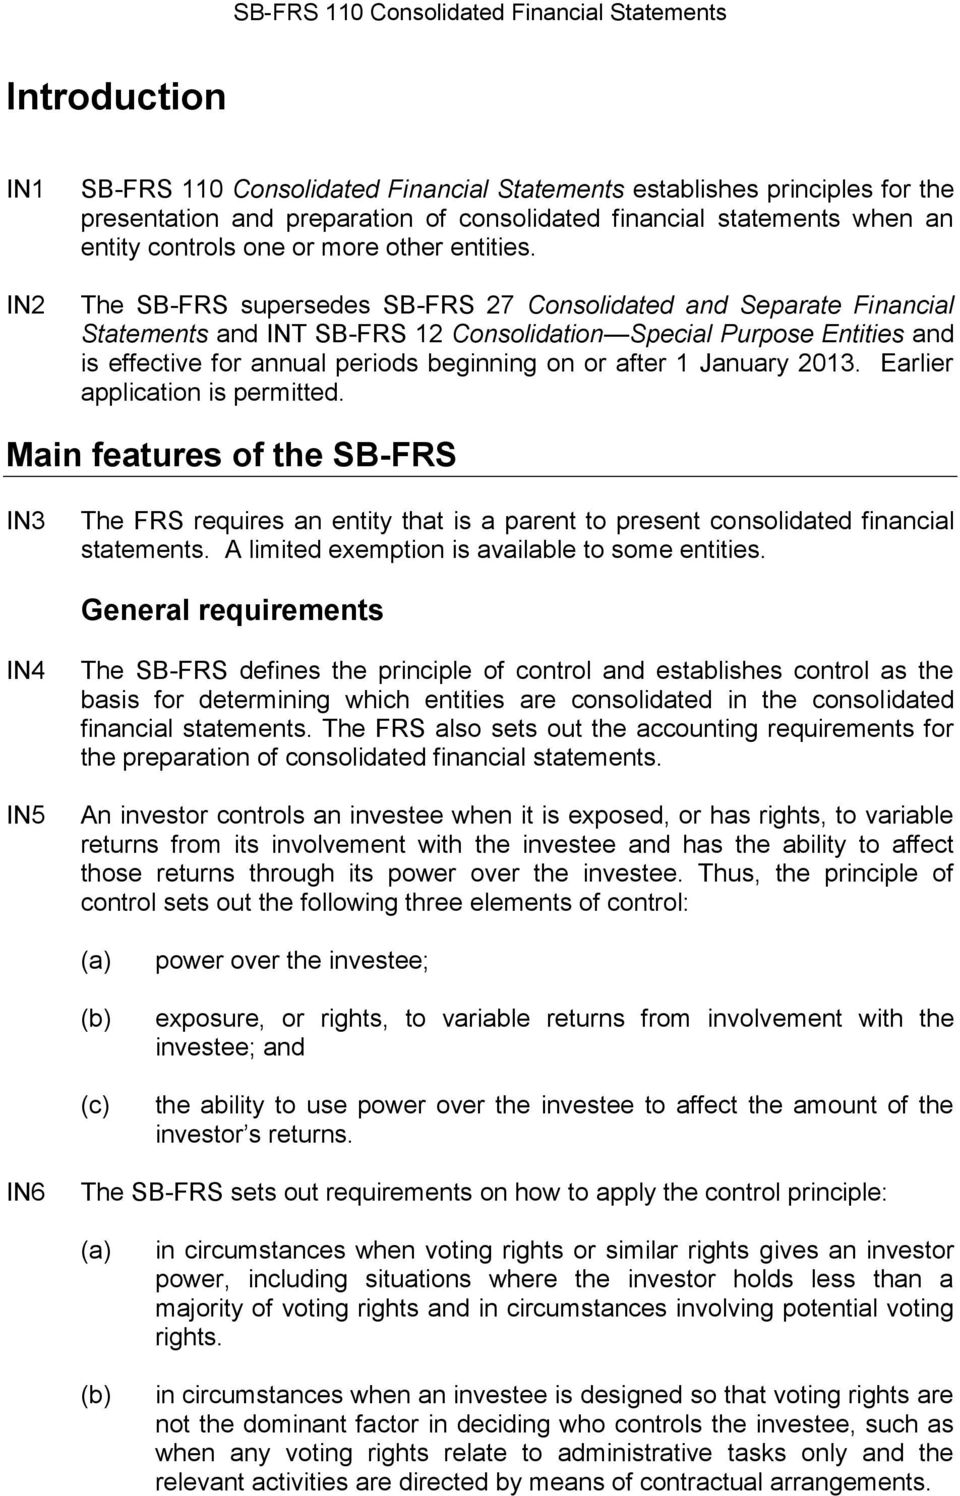 The SB-FRS supersedes SB-FRS 27 Consolidated and Separate Financial Statements and INT SB-FRS 12 Consolidation Special Purpose Entities and is effective for annual periods beginning on or after 1